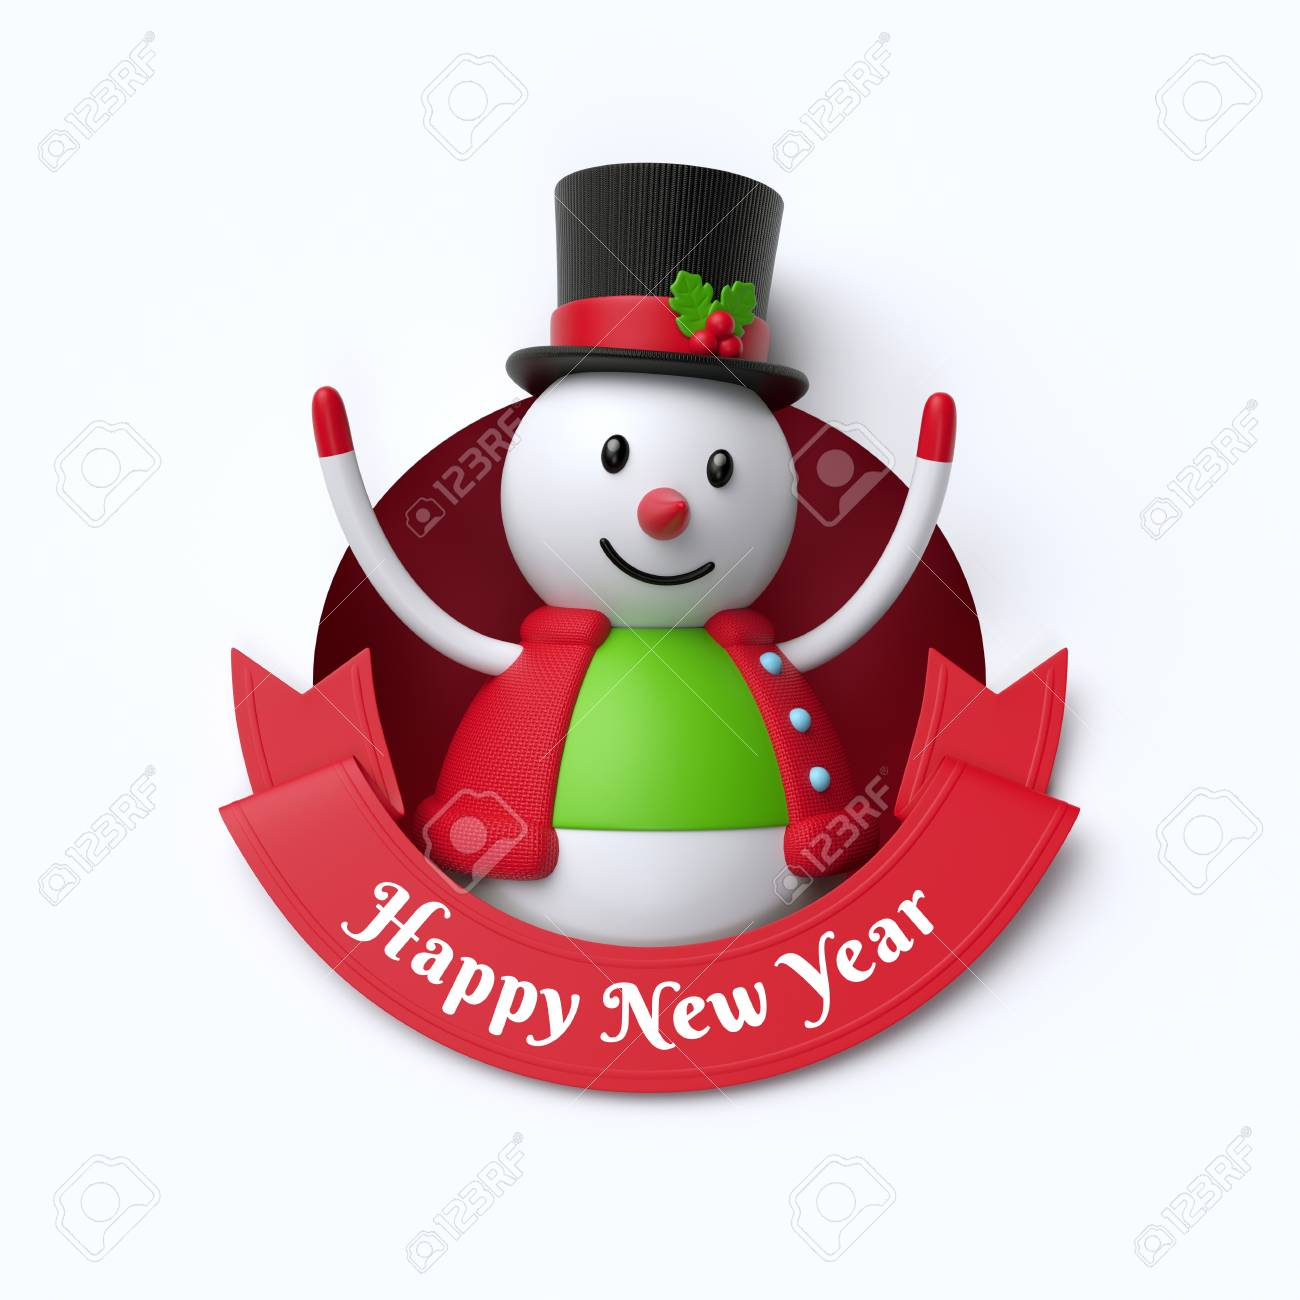 holiday clip art isolated on white background 3d render funny snowman toy inside round hole happy new year red